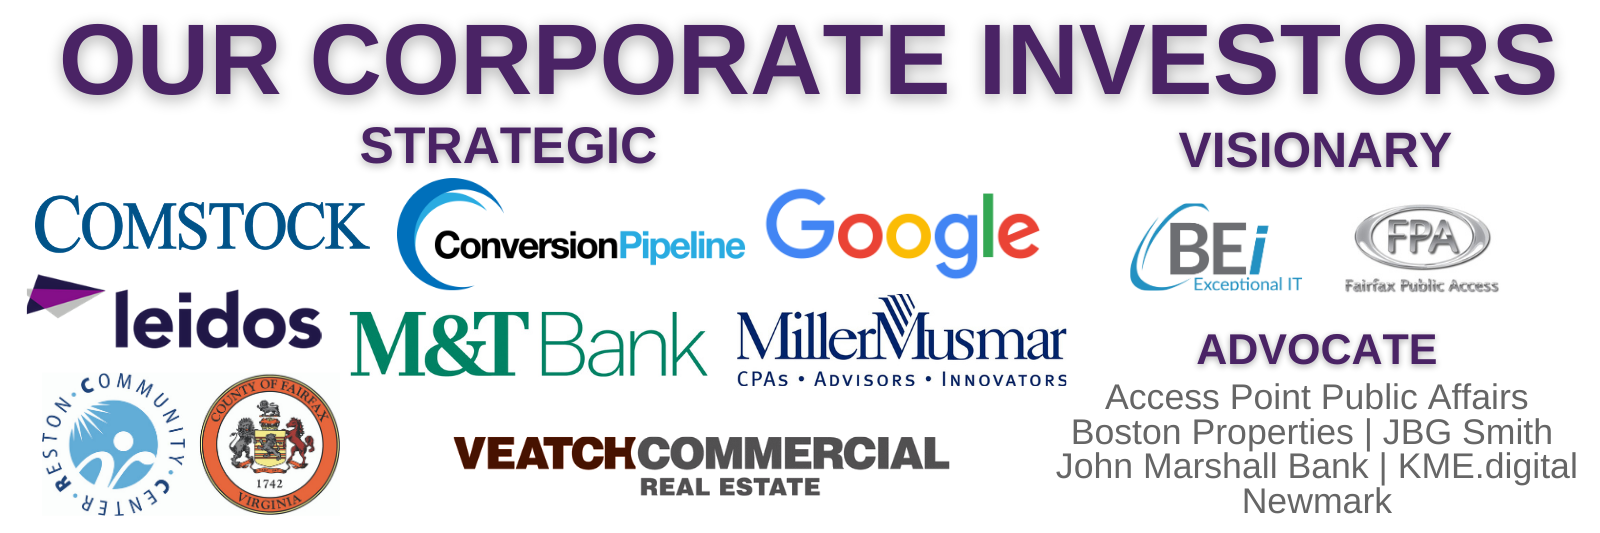 Comstock, Conversion Pipeline, Google, Leidos, M&T Bank, MillerMusmar, Reston Community Center, Veatch, BEI, Fairfax Public Access, Access Point Public Affairs, Boston Properties, JBG Smith, John Marshall Bank, KME.digital, Newmark